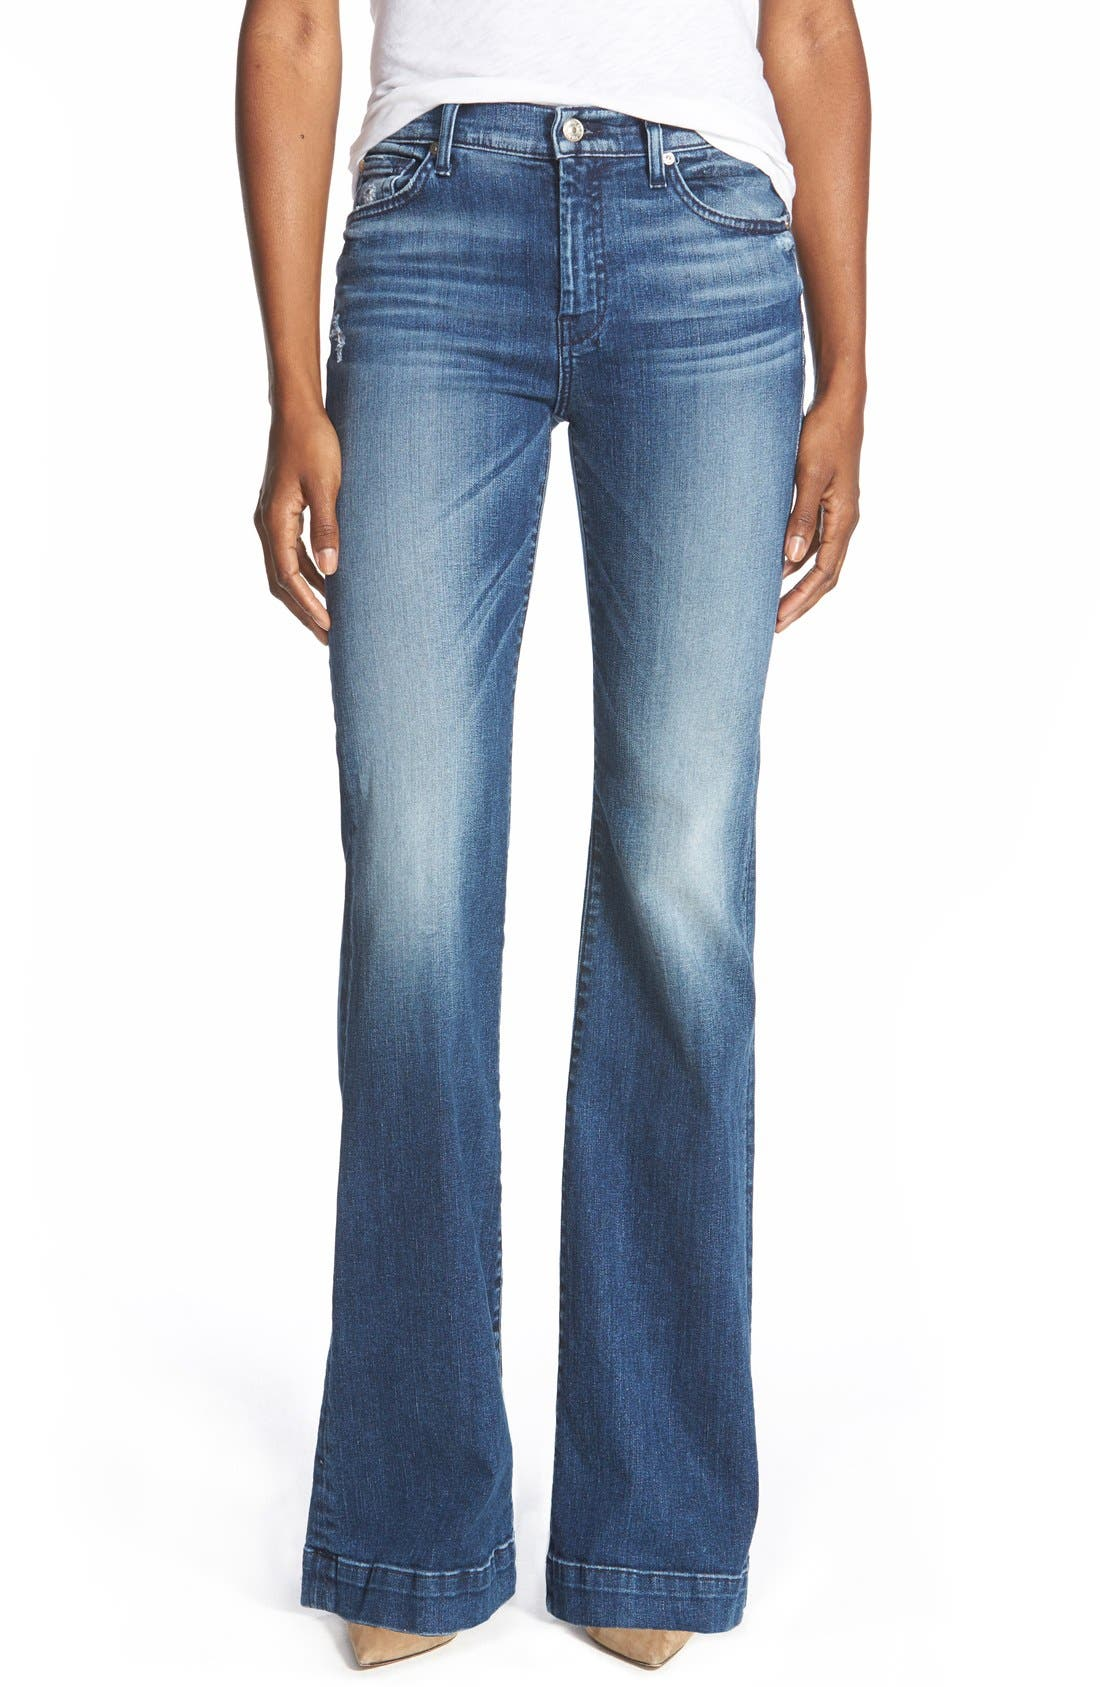 7 FOR ALL MANKIND<SUP>®</SUP>, b(air) Dojo Trouser Jeans, Main thumbnail 1, color, 472